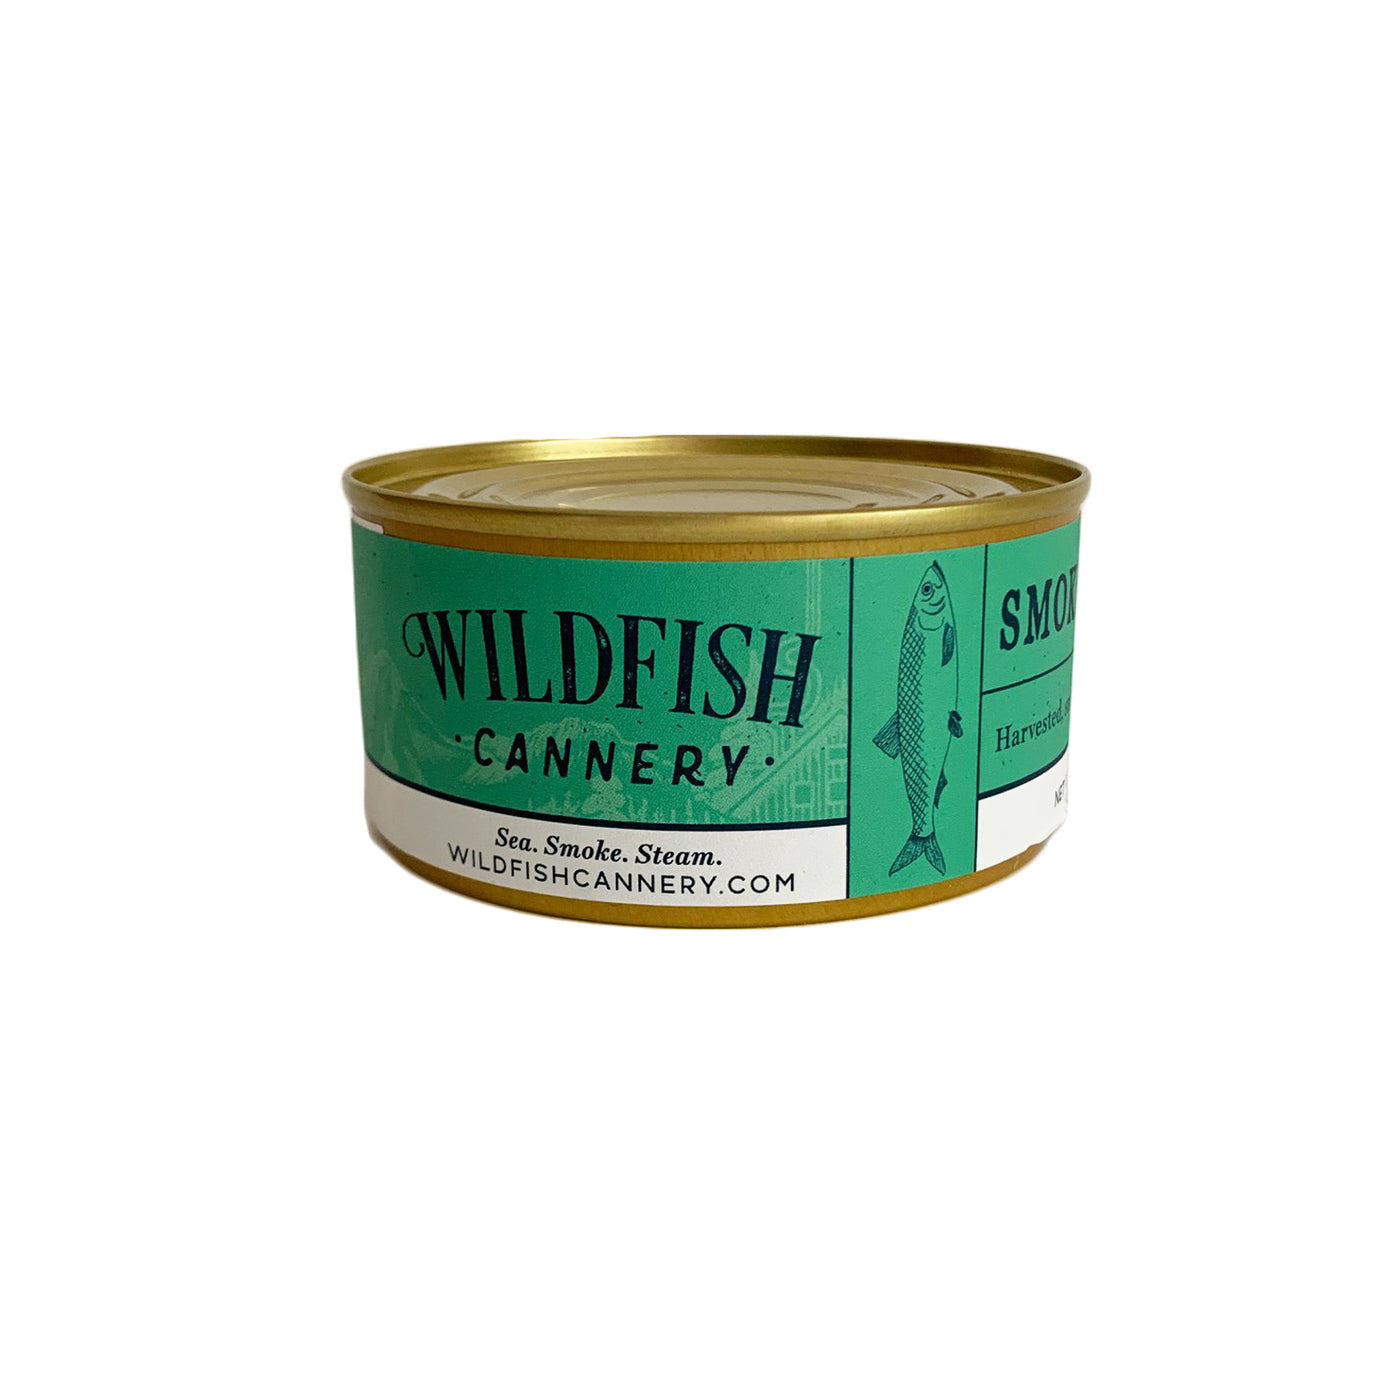 Wildfish Cannery Smoked Alaskan Herring 6 Ounces